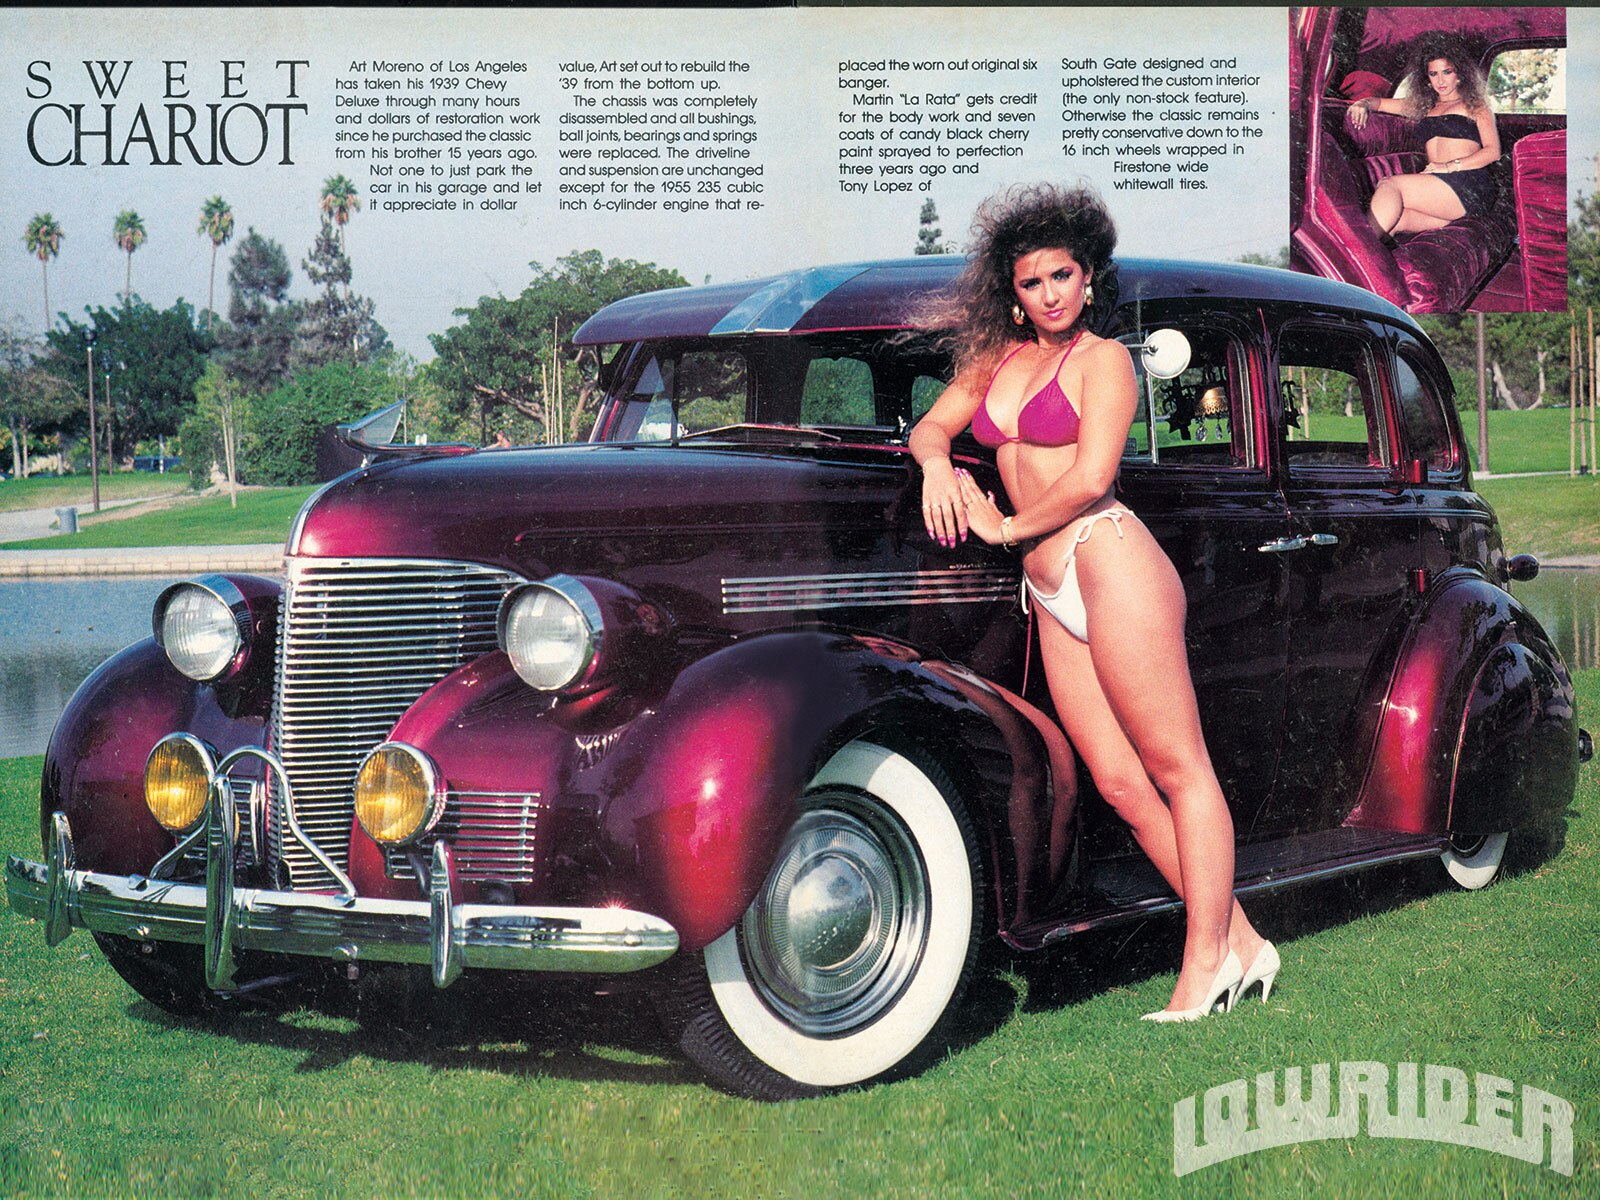 1302-lrmp-01-o-lowrider-established-in-1977-1939-chevy-deluxe1